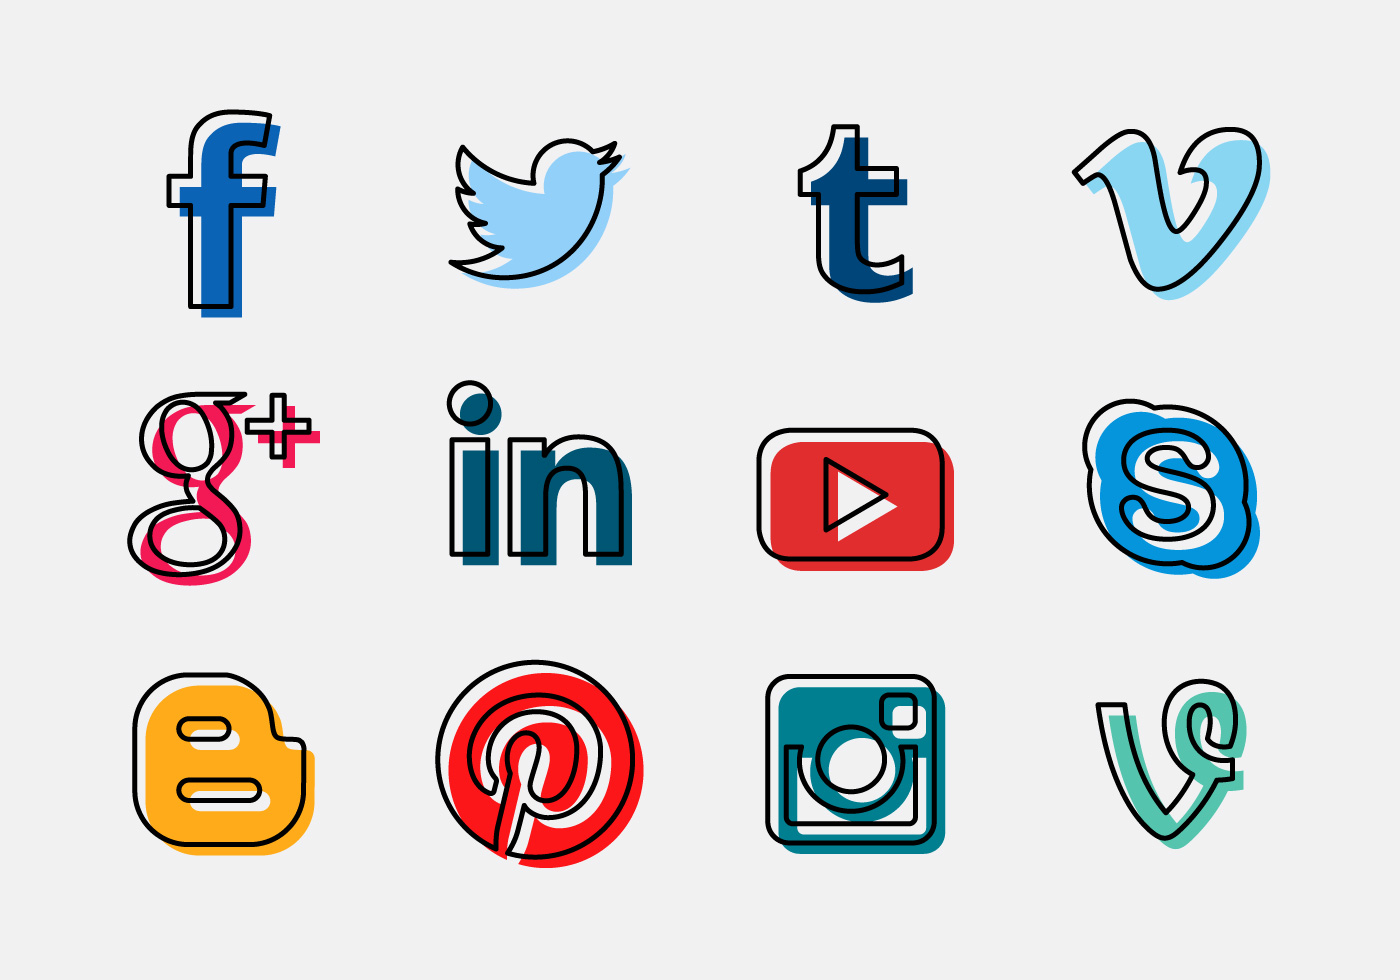 vector-social-media-logo-icon.jpg